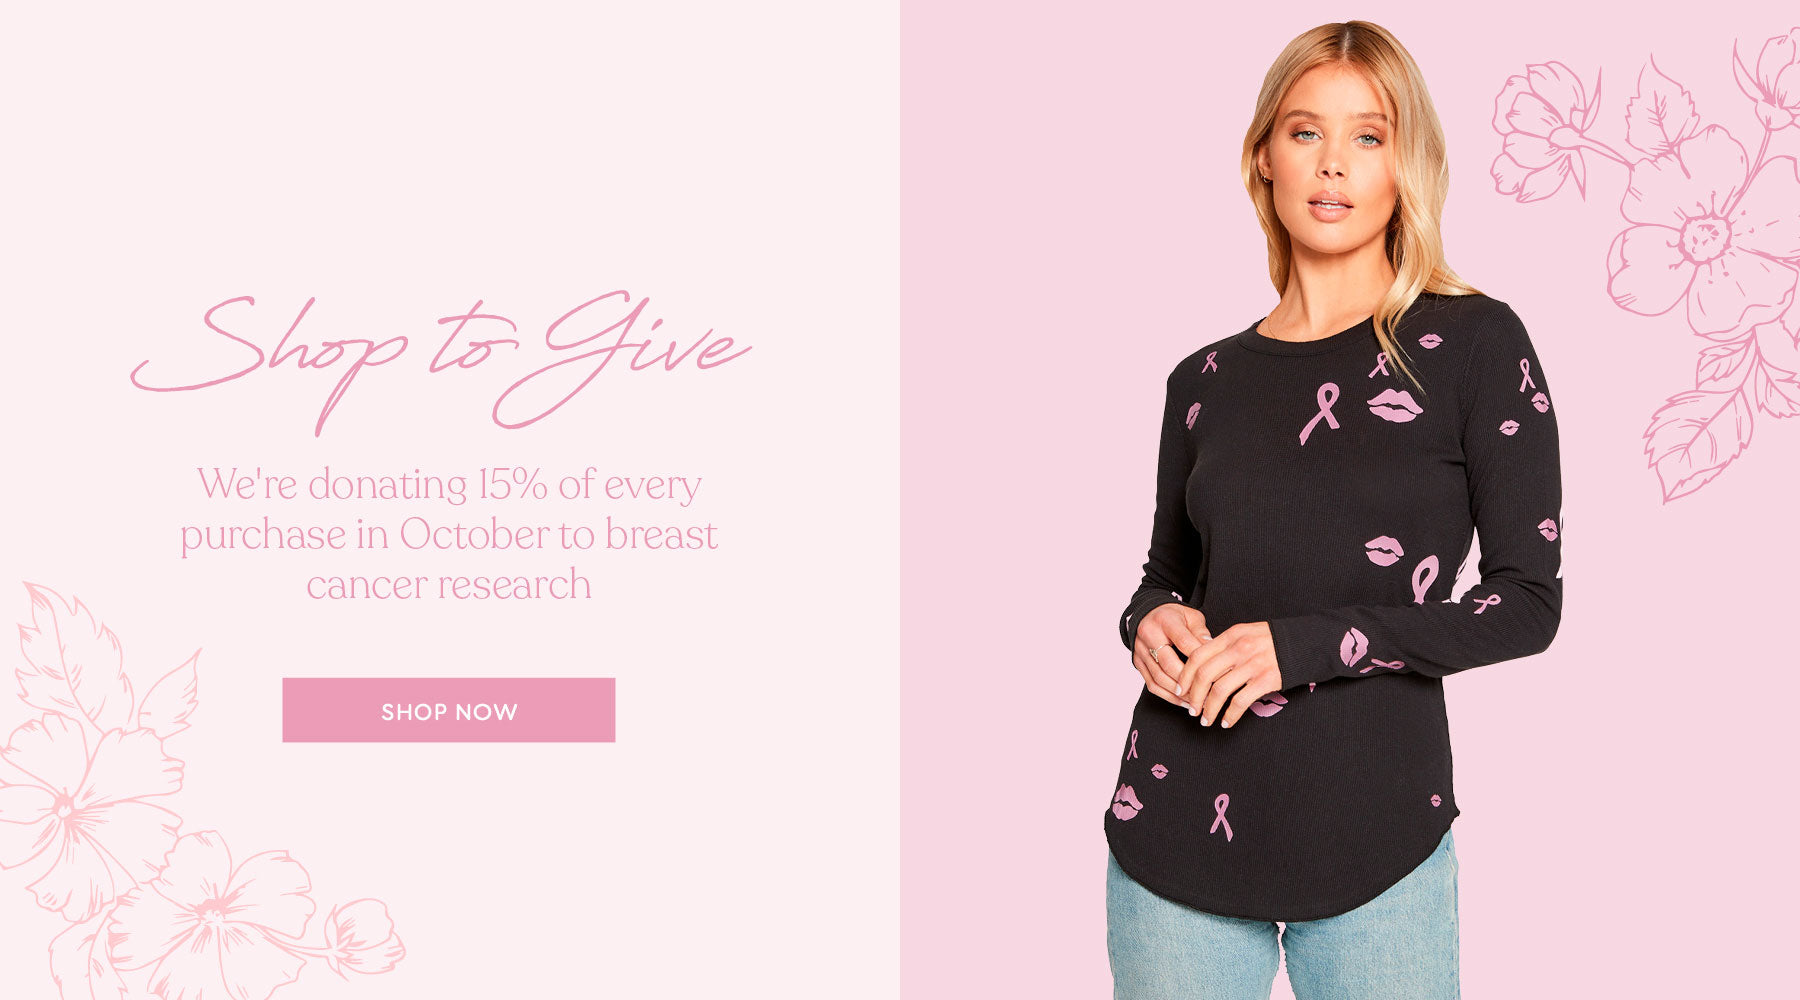 Buy in October & 15% of your purchase goes to breast cancer research. What are you waiting for? Start shopping!